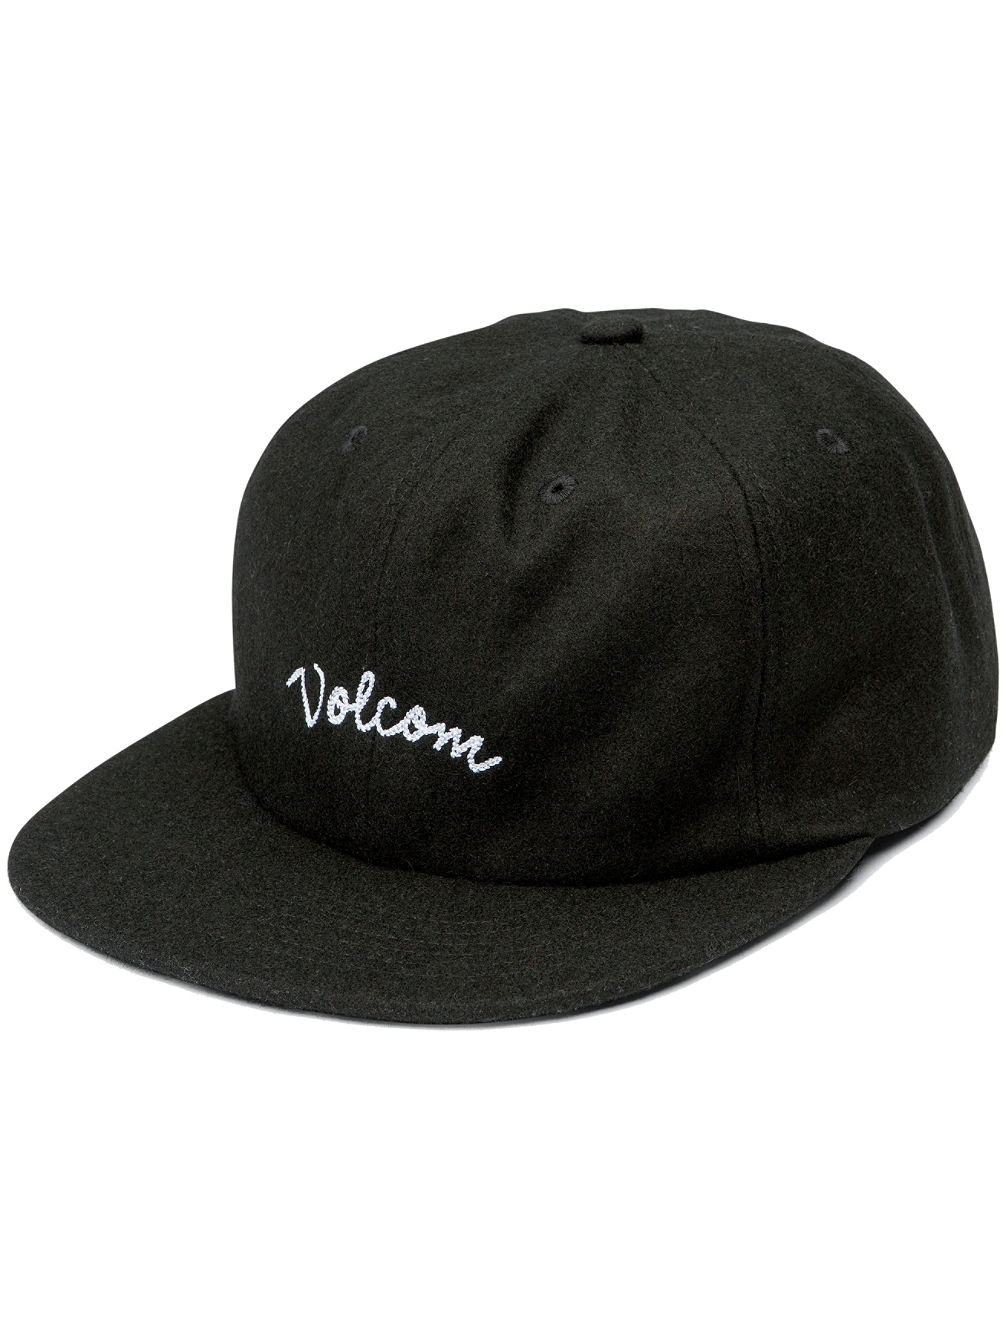 d6e188c500e06 Buy Volcom Wooly Cap online at Blue Tomato